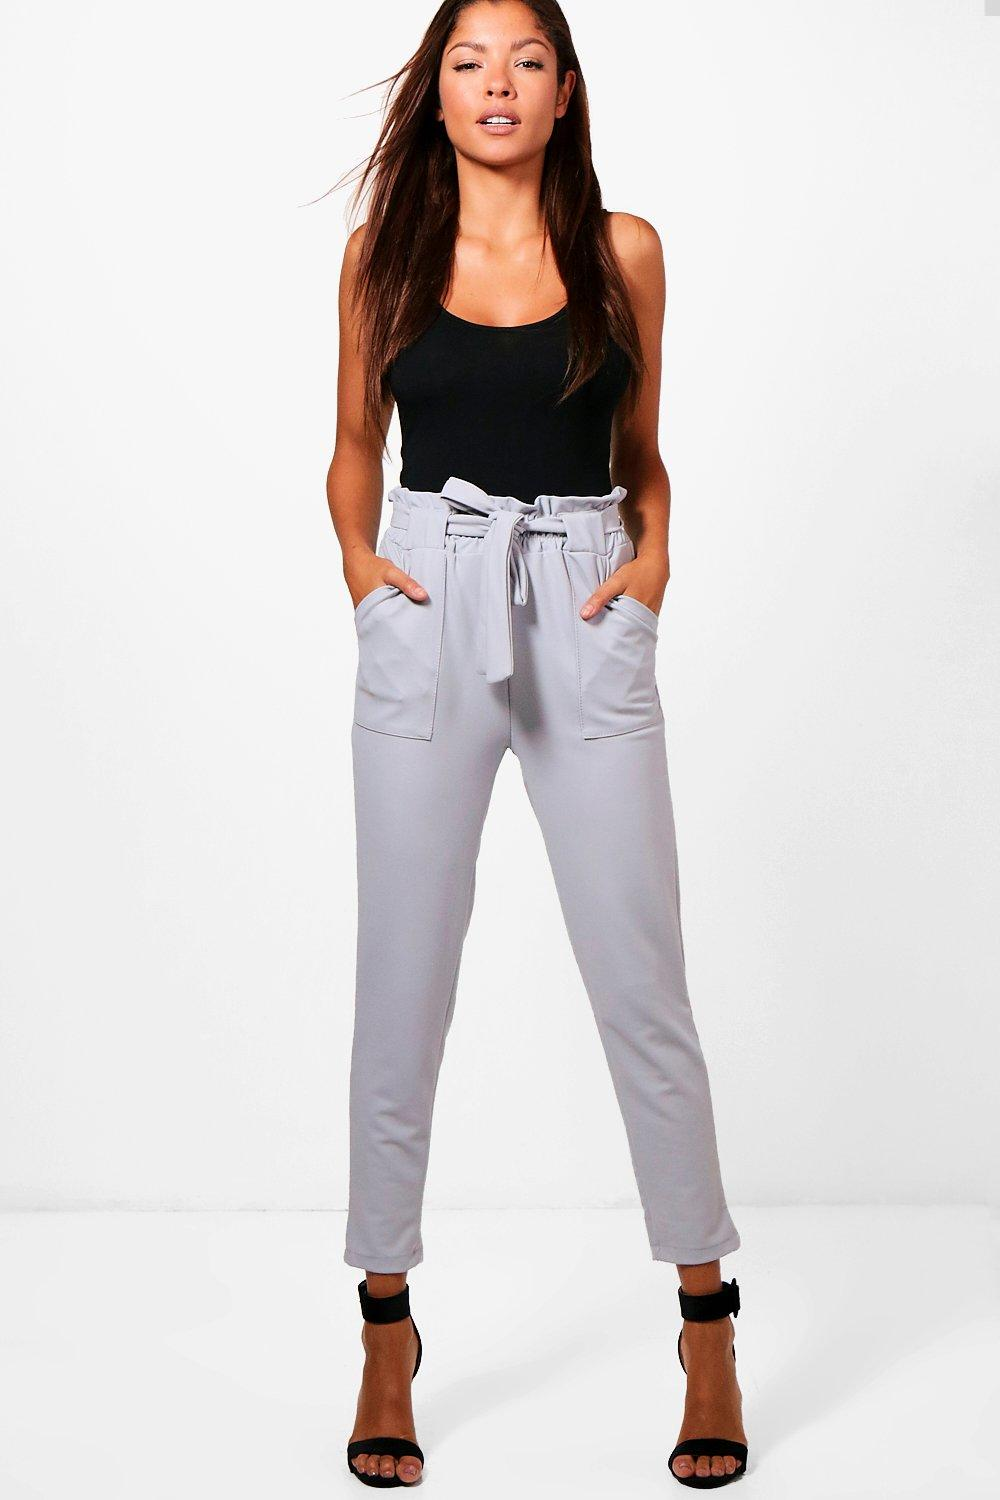 grey Waist Paperbag grey Trouser Trouser Waist Belted Belted Paperbag zaqAwFE